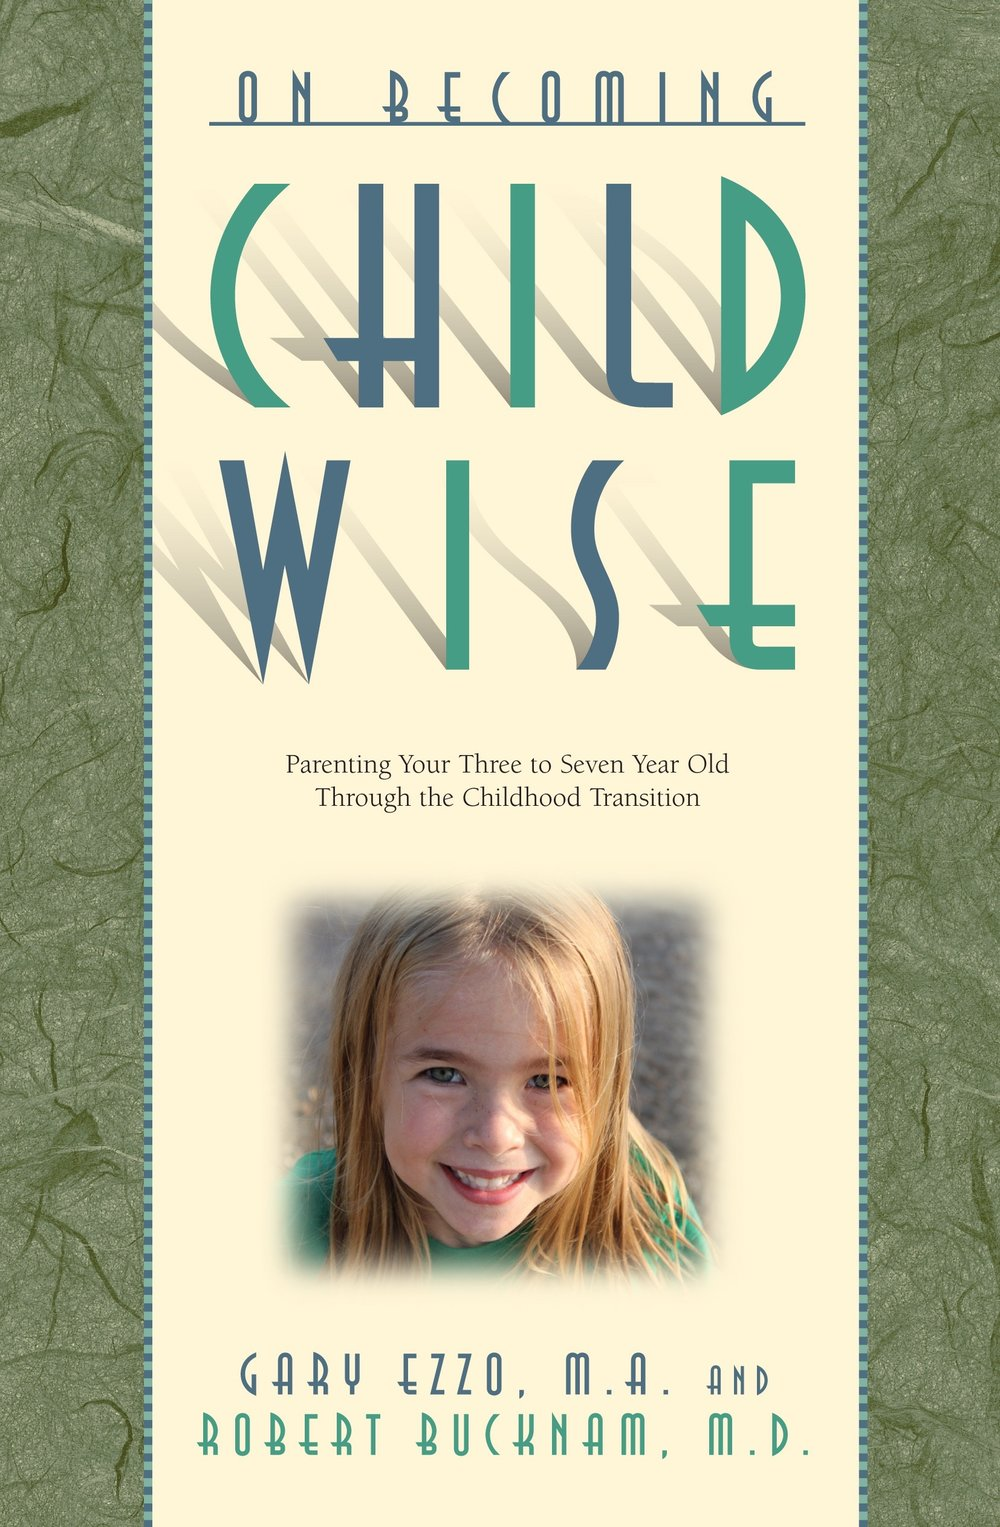 Childwise Cover.jpg